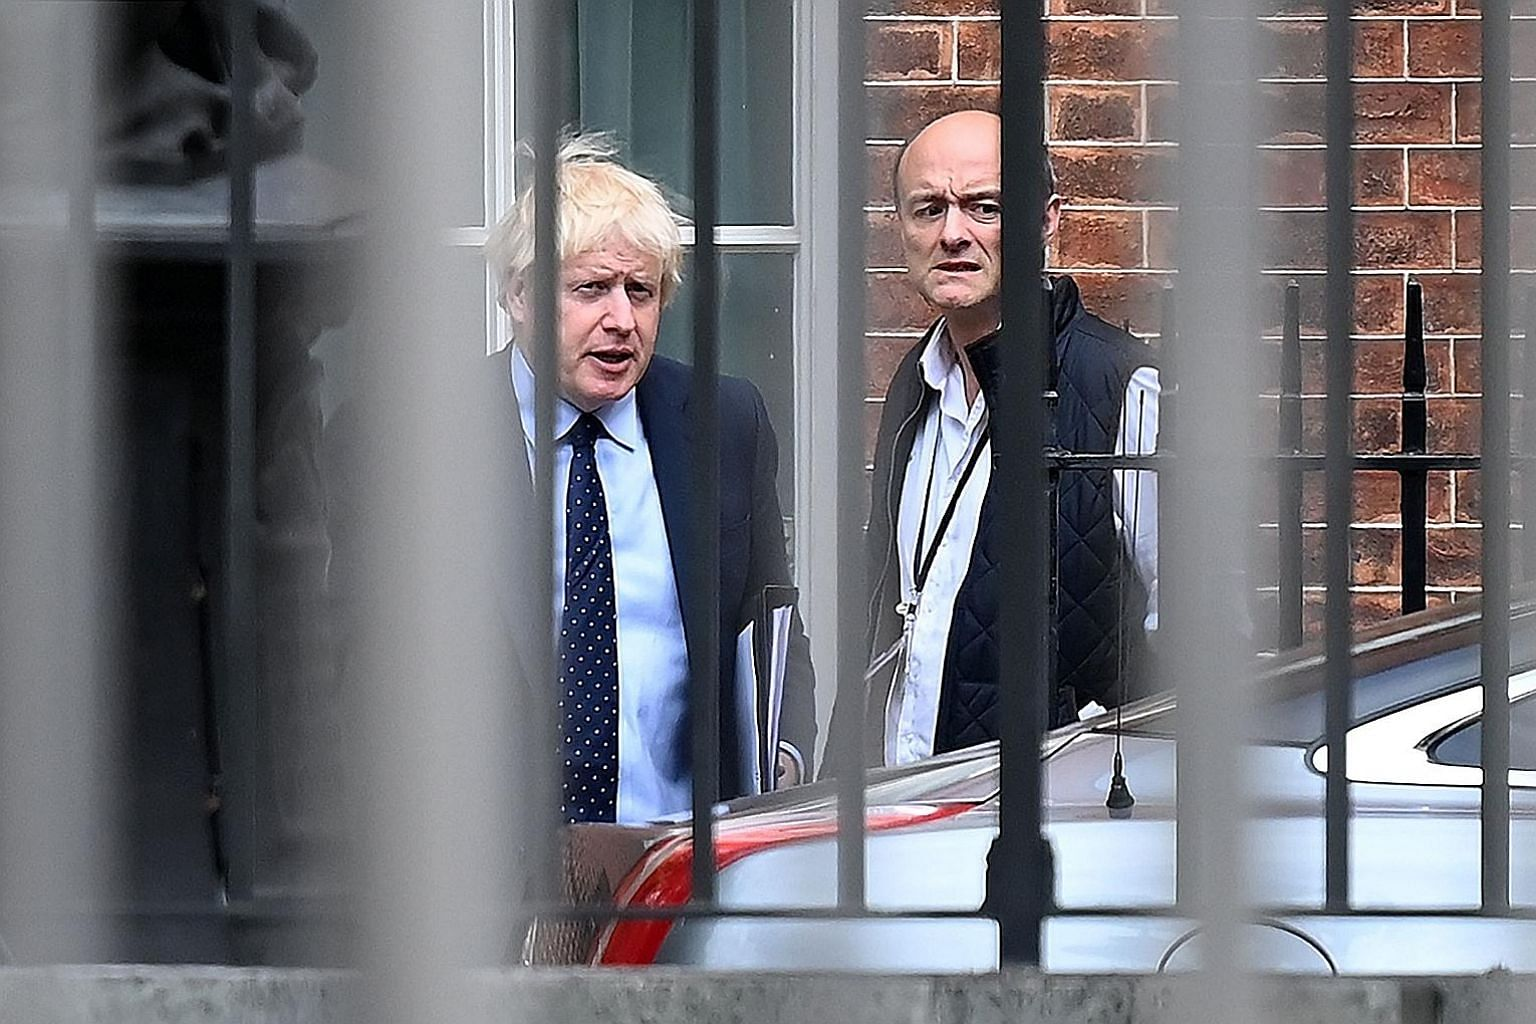 British Prime Minister Boris Johnson (left) with Mr Dominic Cummings, who was behind the government's move to suspend parliamentary debates and the one who came up with the idea of calling early elections. PHOTO: AGENCE FRANCE-PRESSE